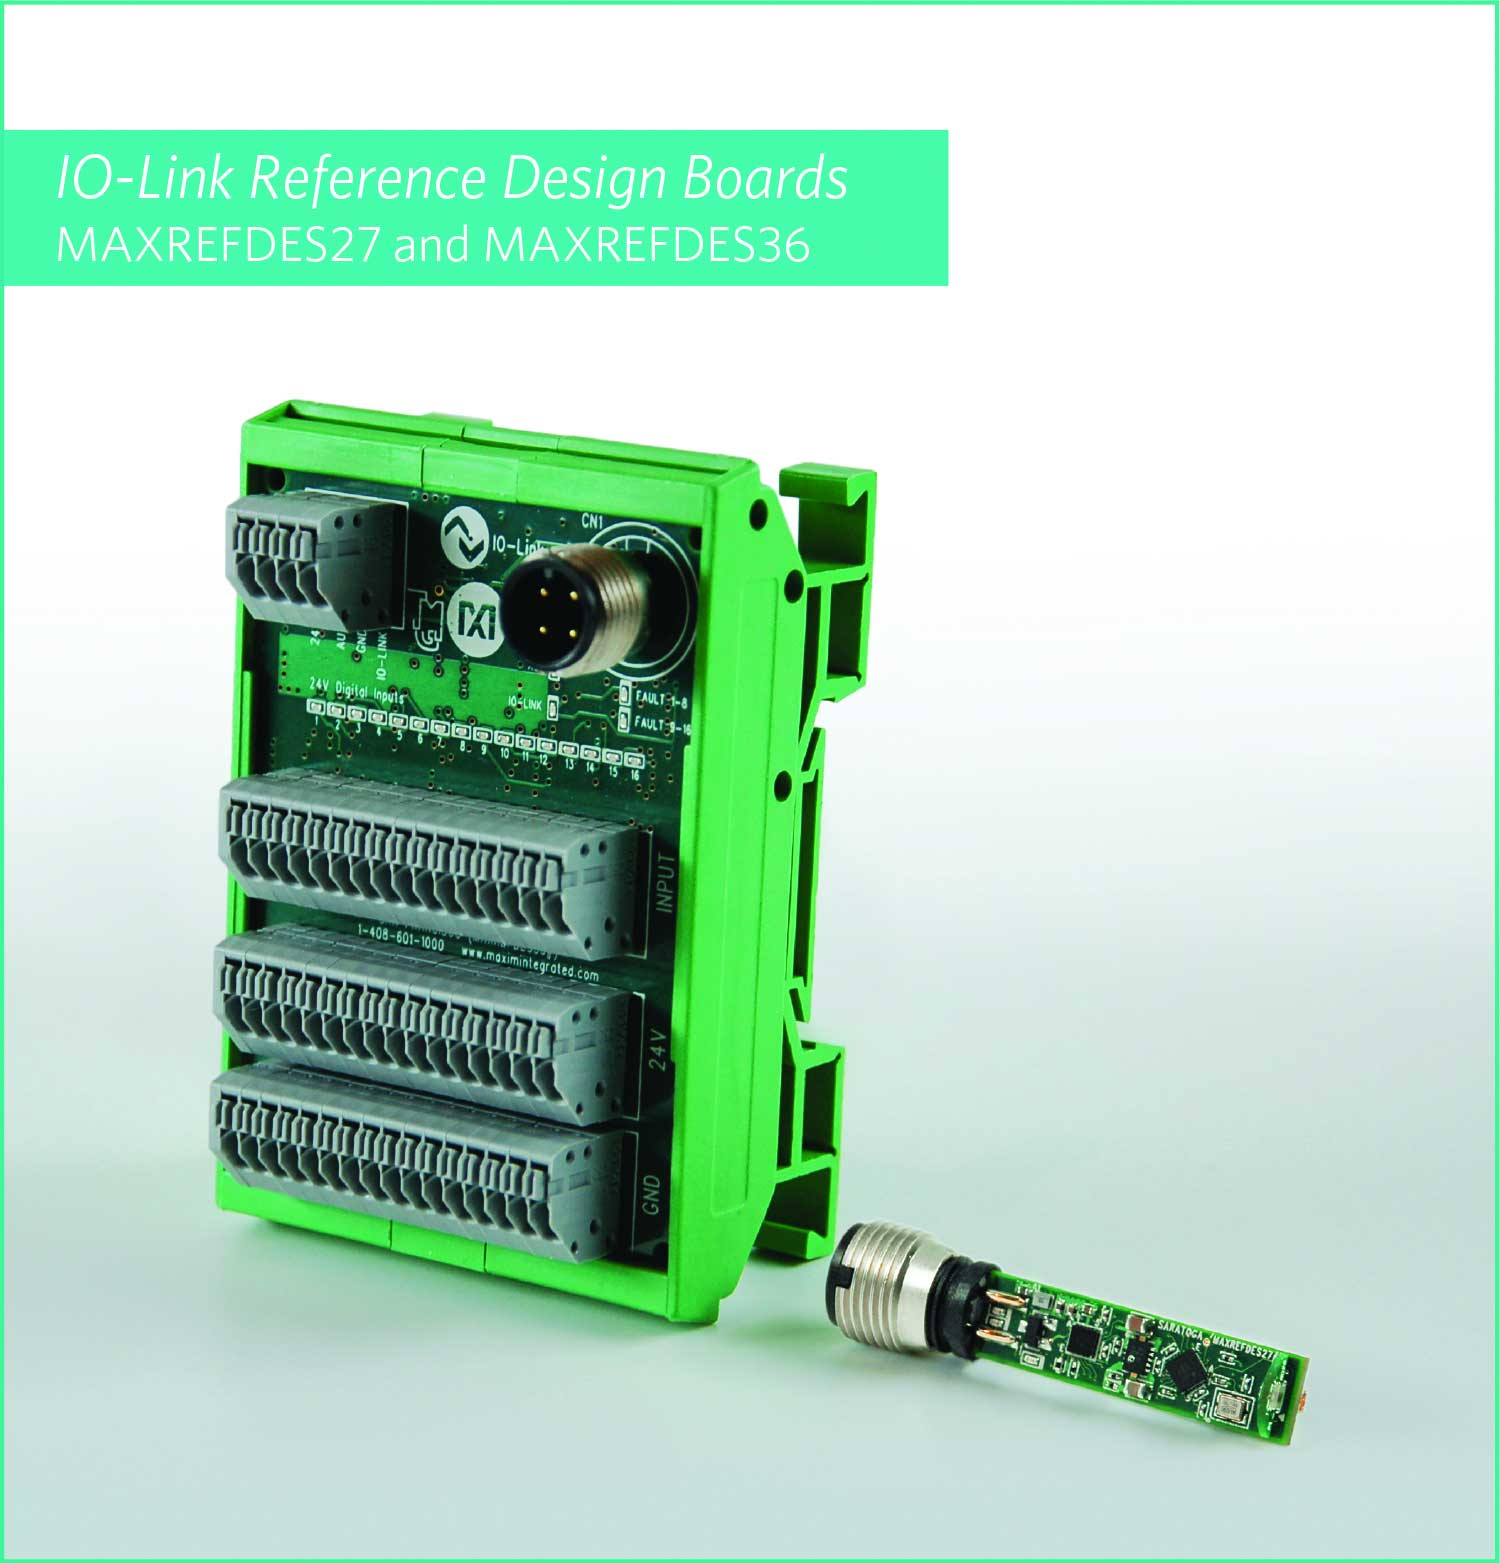 Maxim Integrated Introduces Two IO-Link Reference Designs for Optical Proximity Sensing and Enhanced Distributed Control